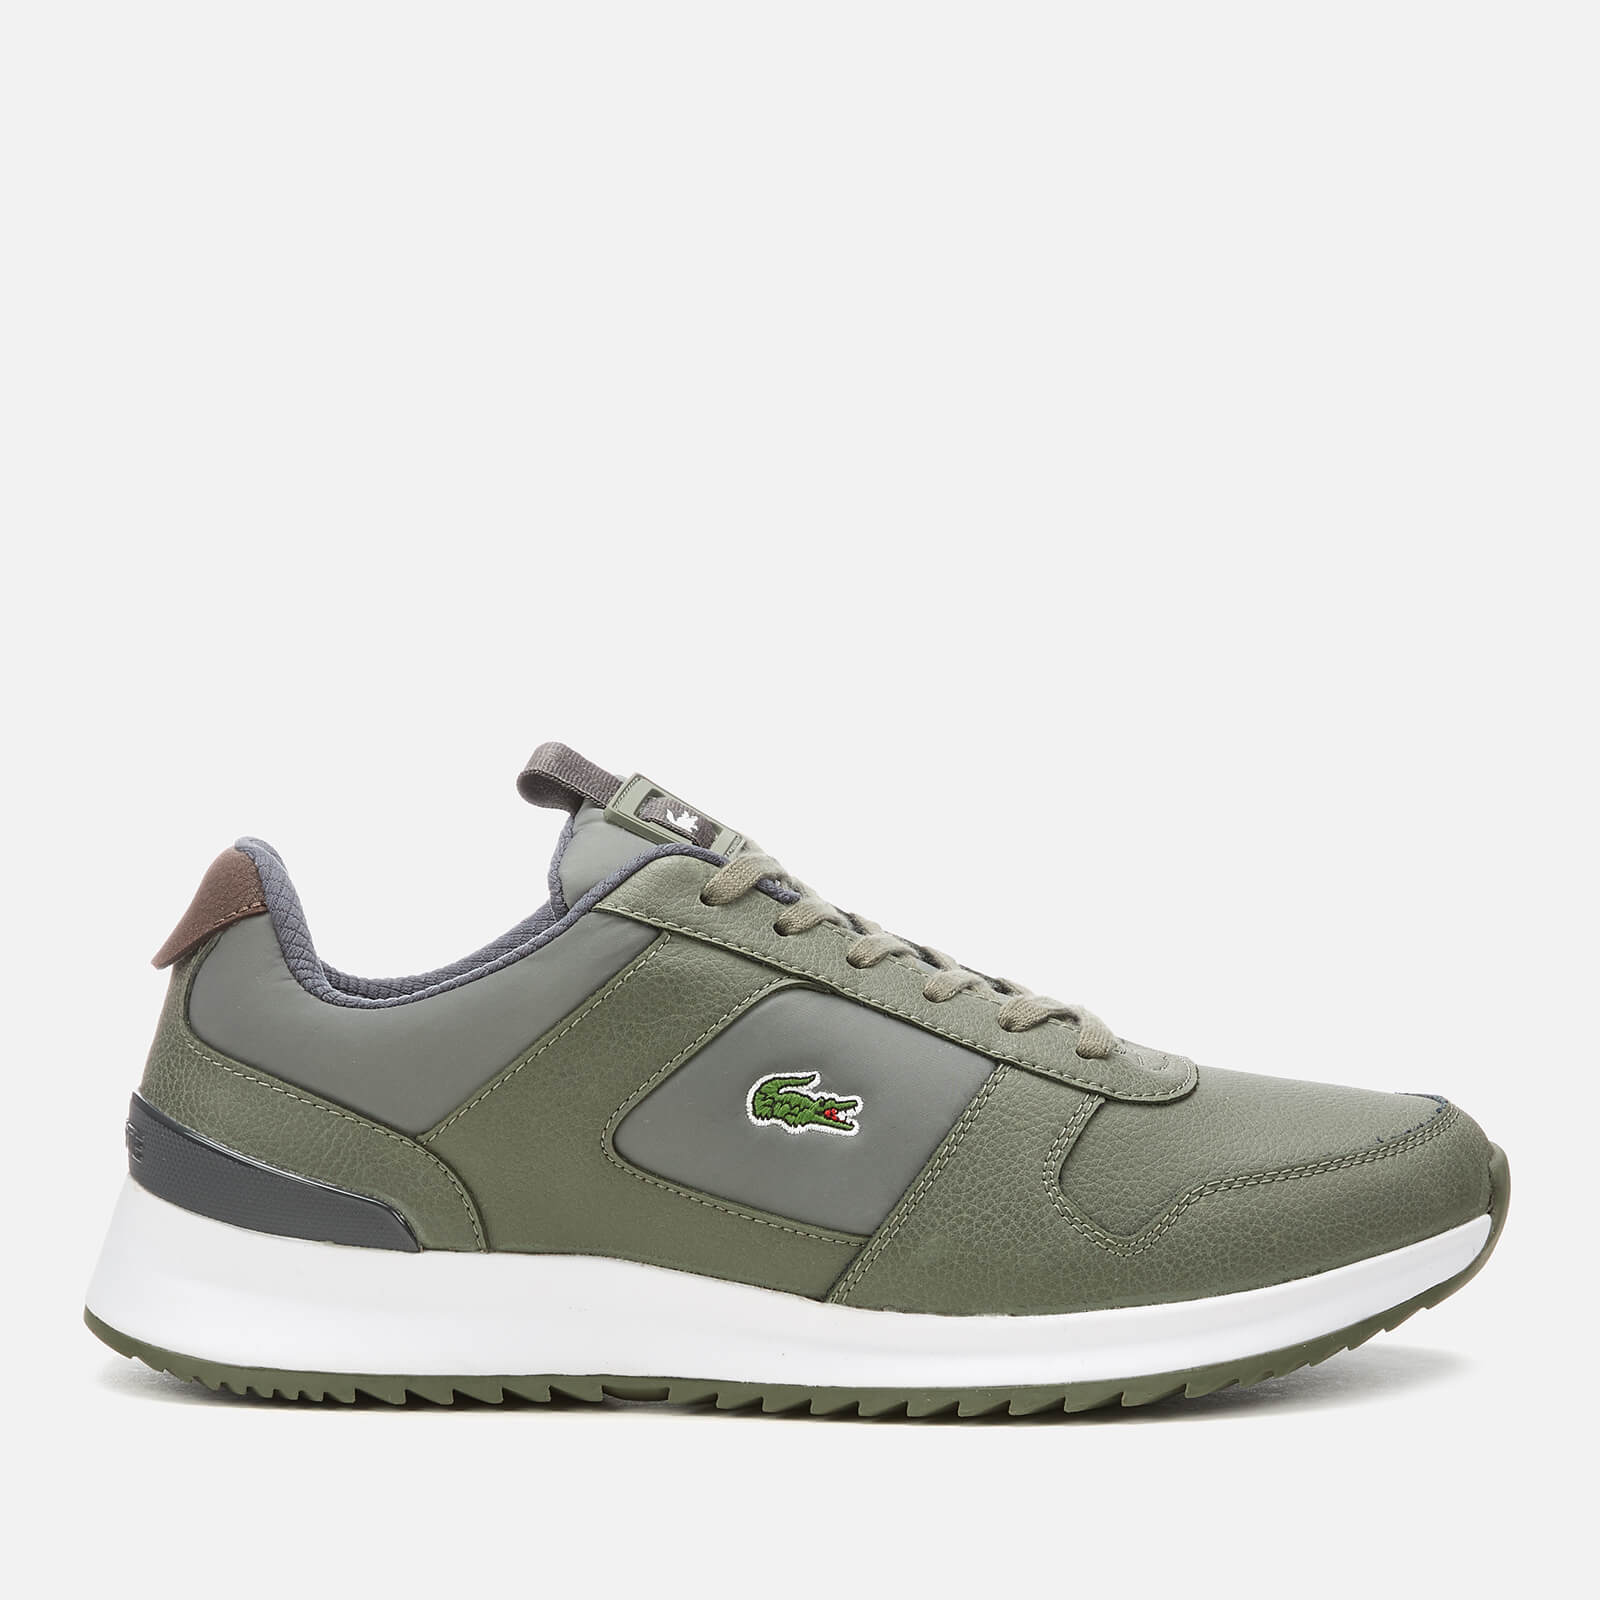 1ea5f4a5b Lacoste Men s Joggeur 2.0 318 1 Textile Leather Runner Style Trainers -  Khaki Dark Grey Mens Footwear